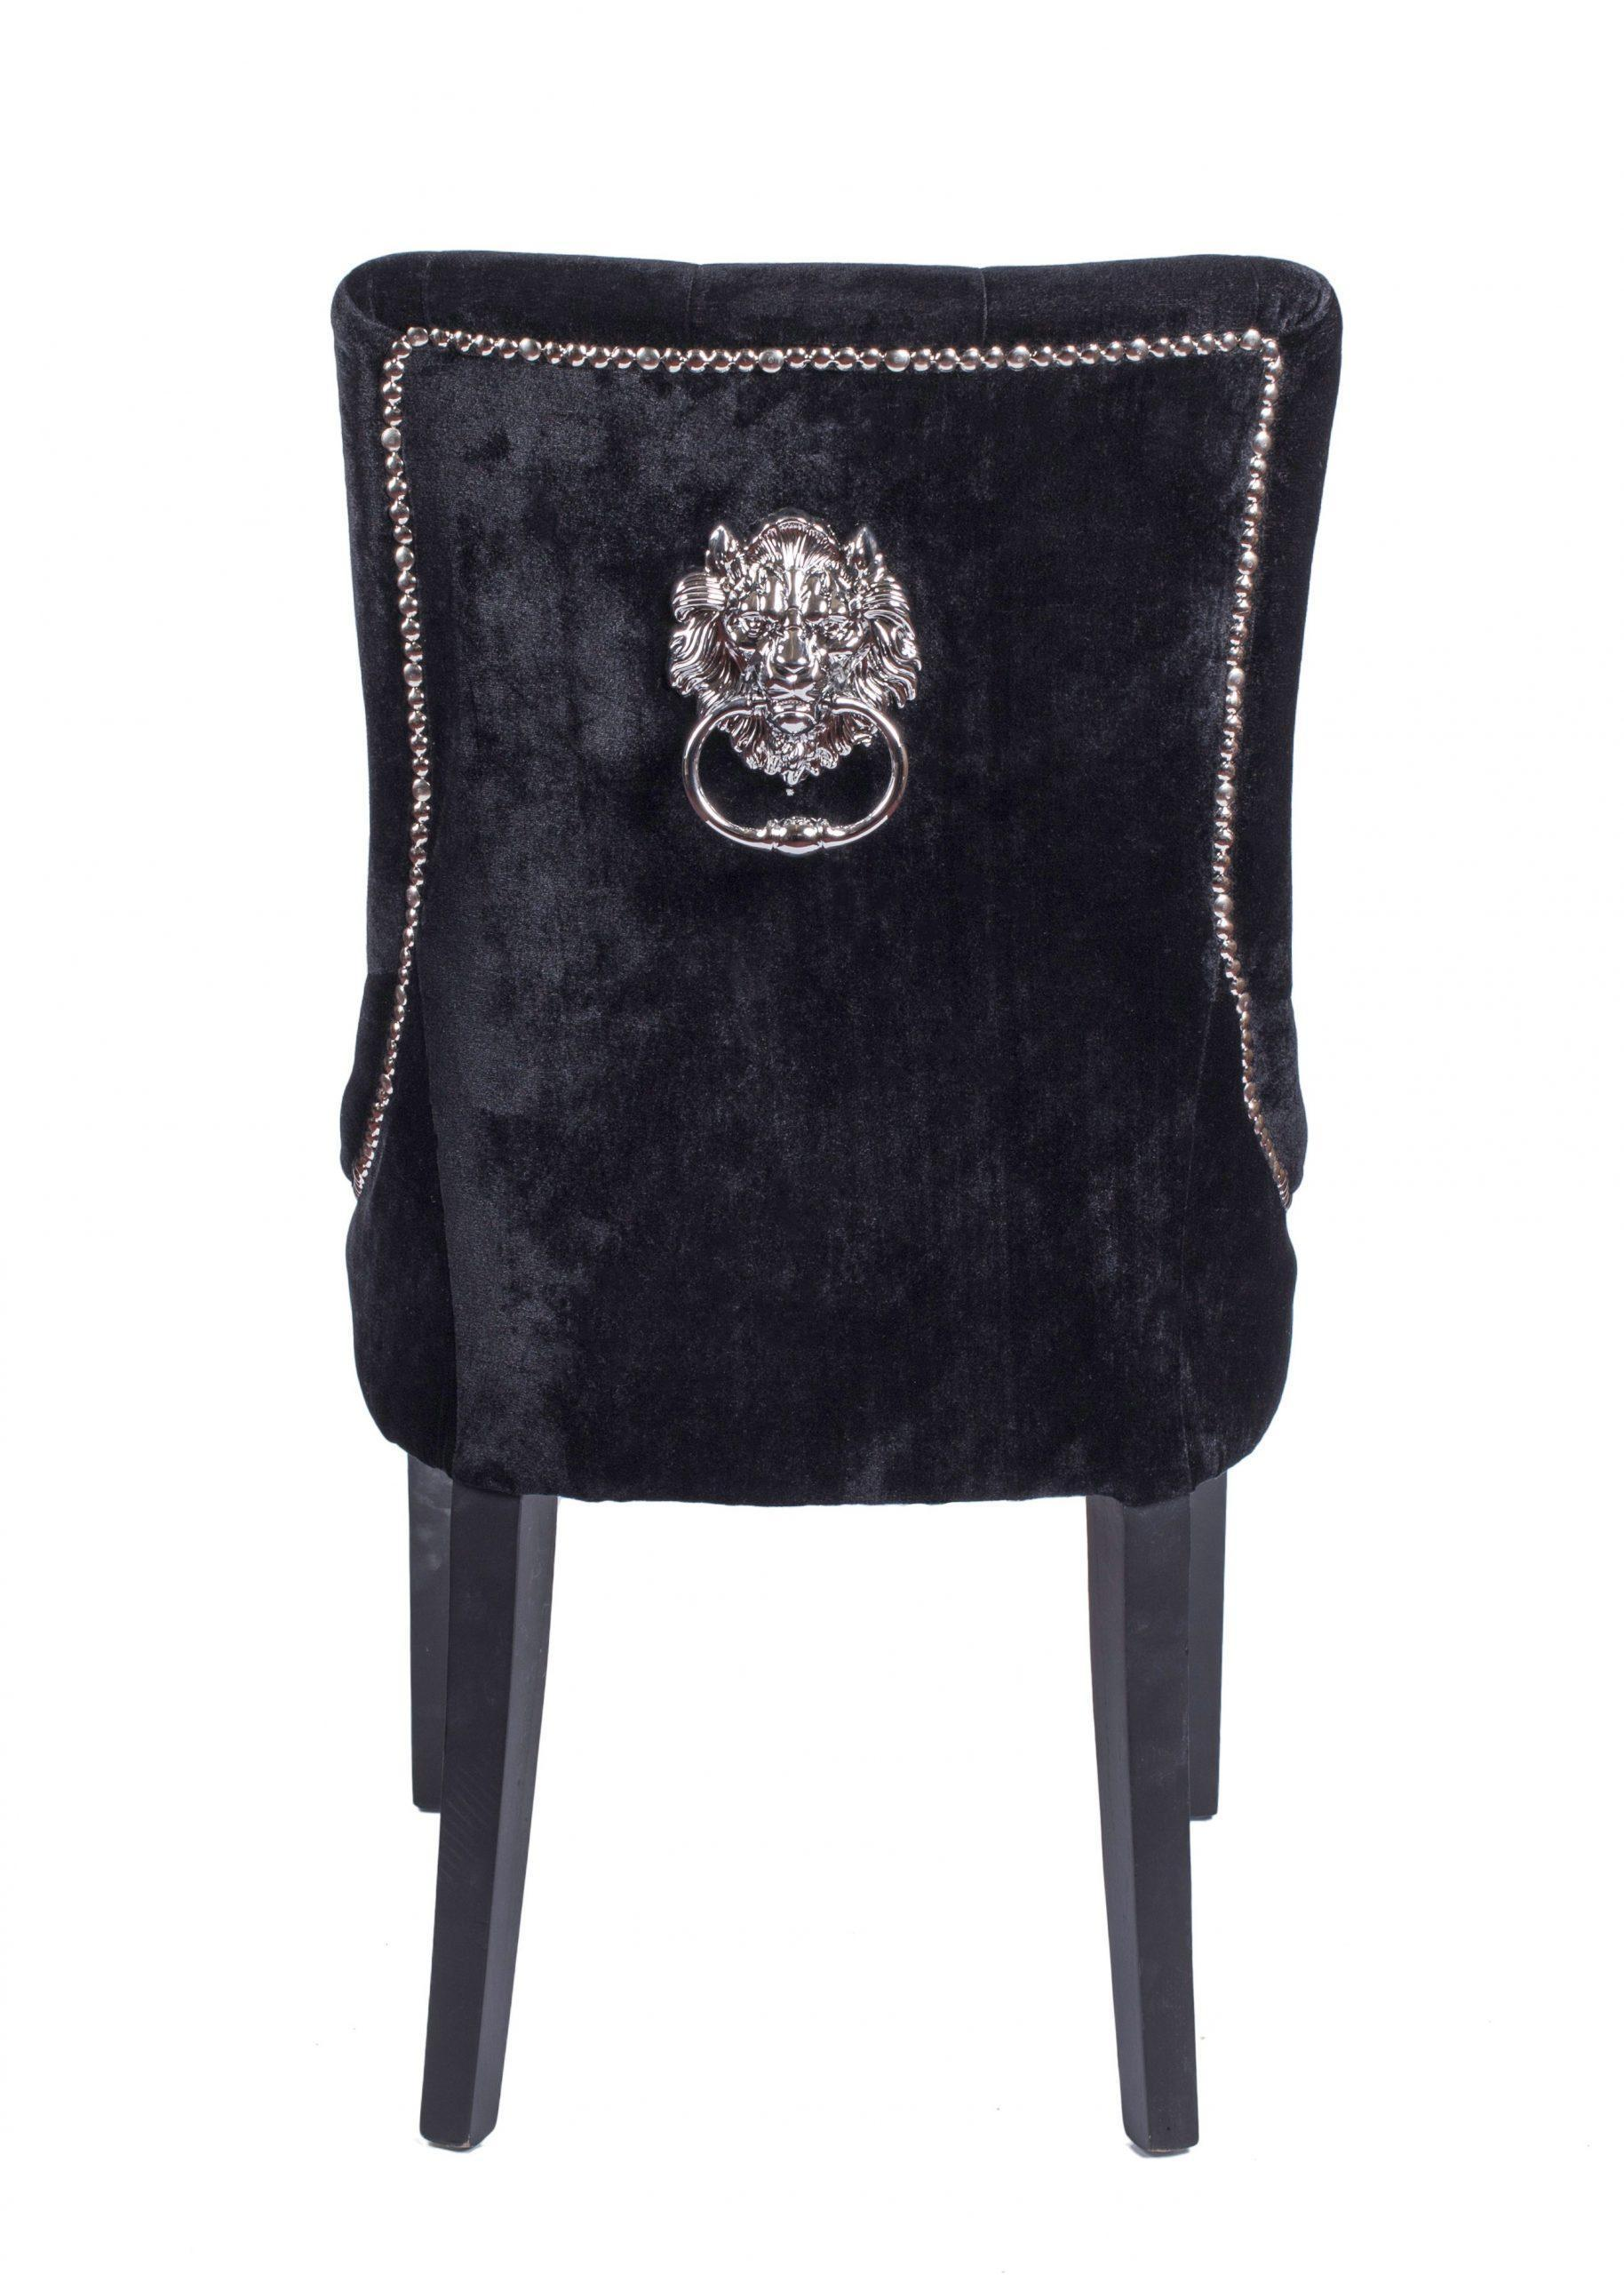 Studded Dining Chairs Black Chrome Studded Dining Chair With Lion Knocker